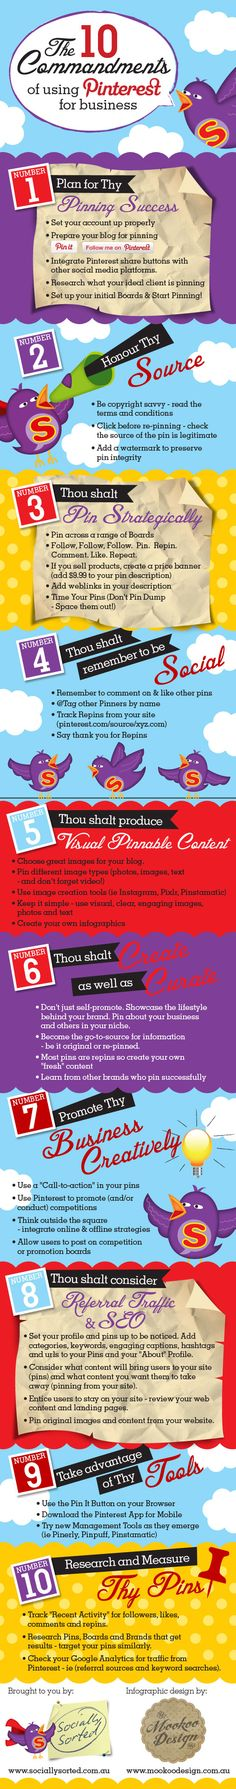 10 Commandments of Using Pinterest for Business [infographic]  Good stuff for packaging.